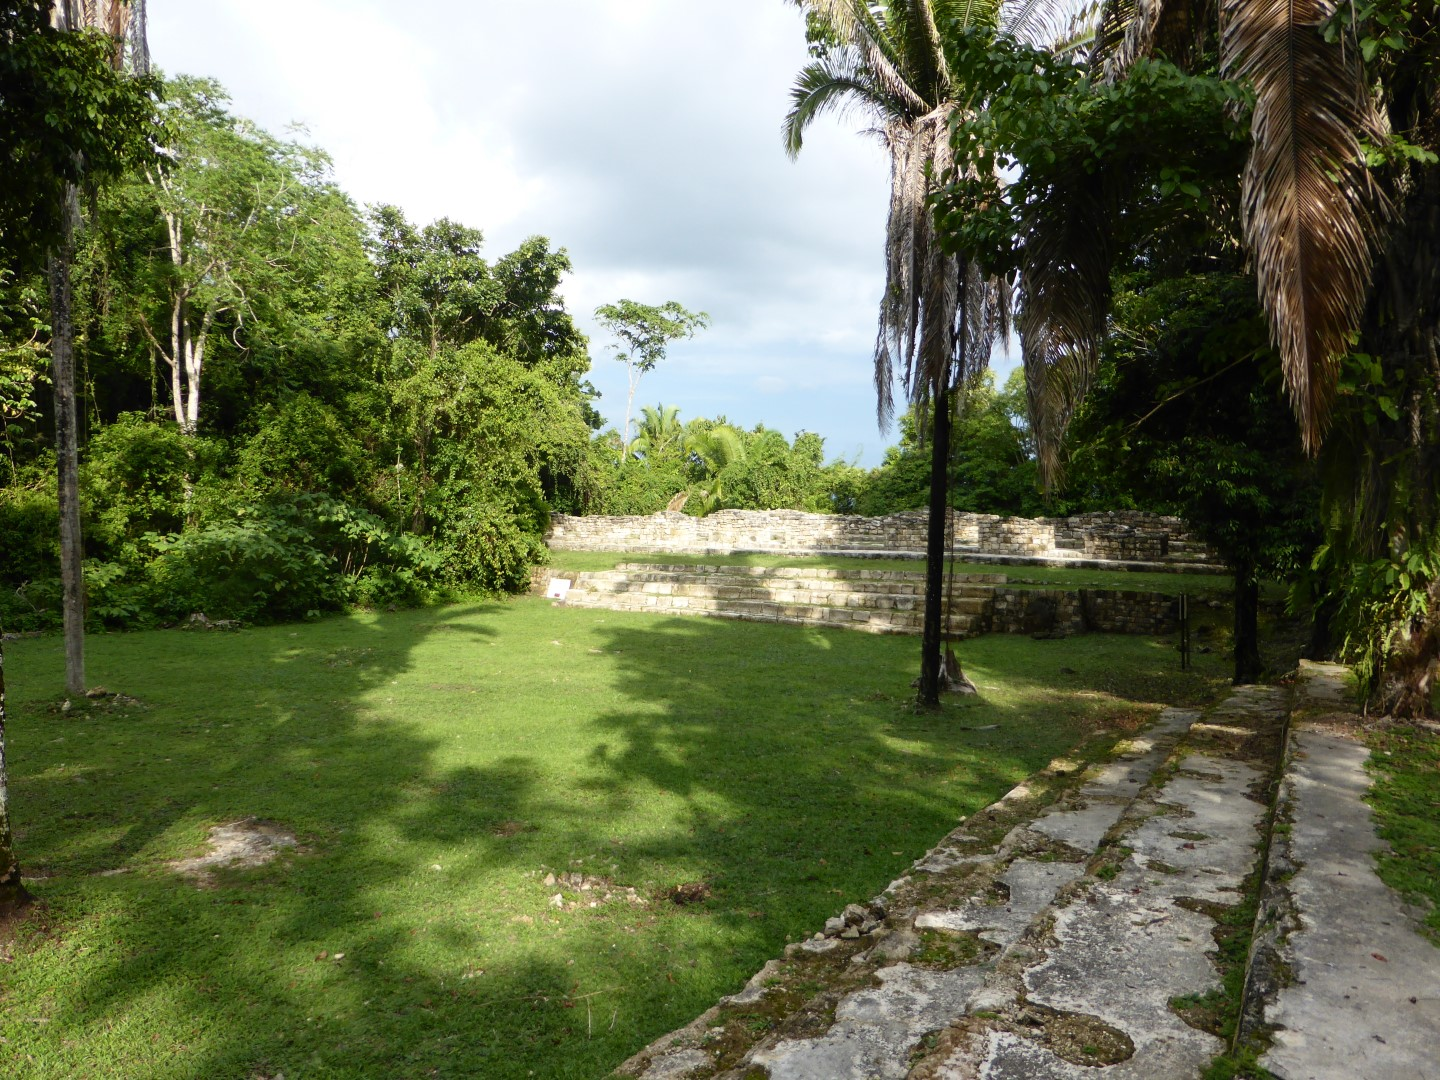 Ruins of building at Aguateca, Guatemala